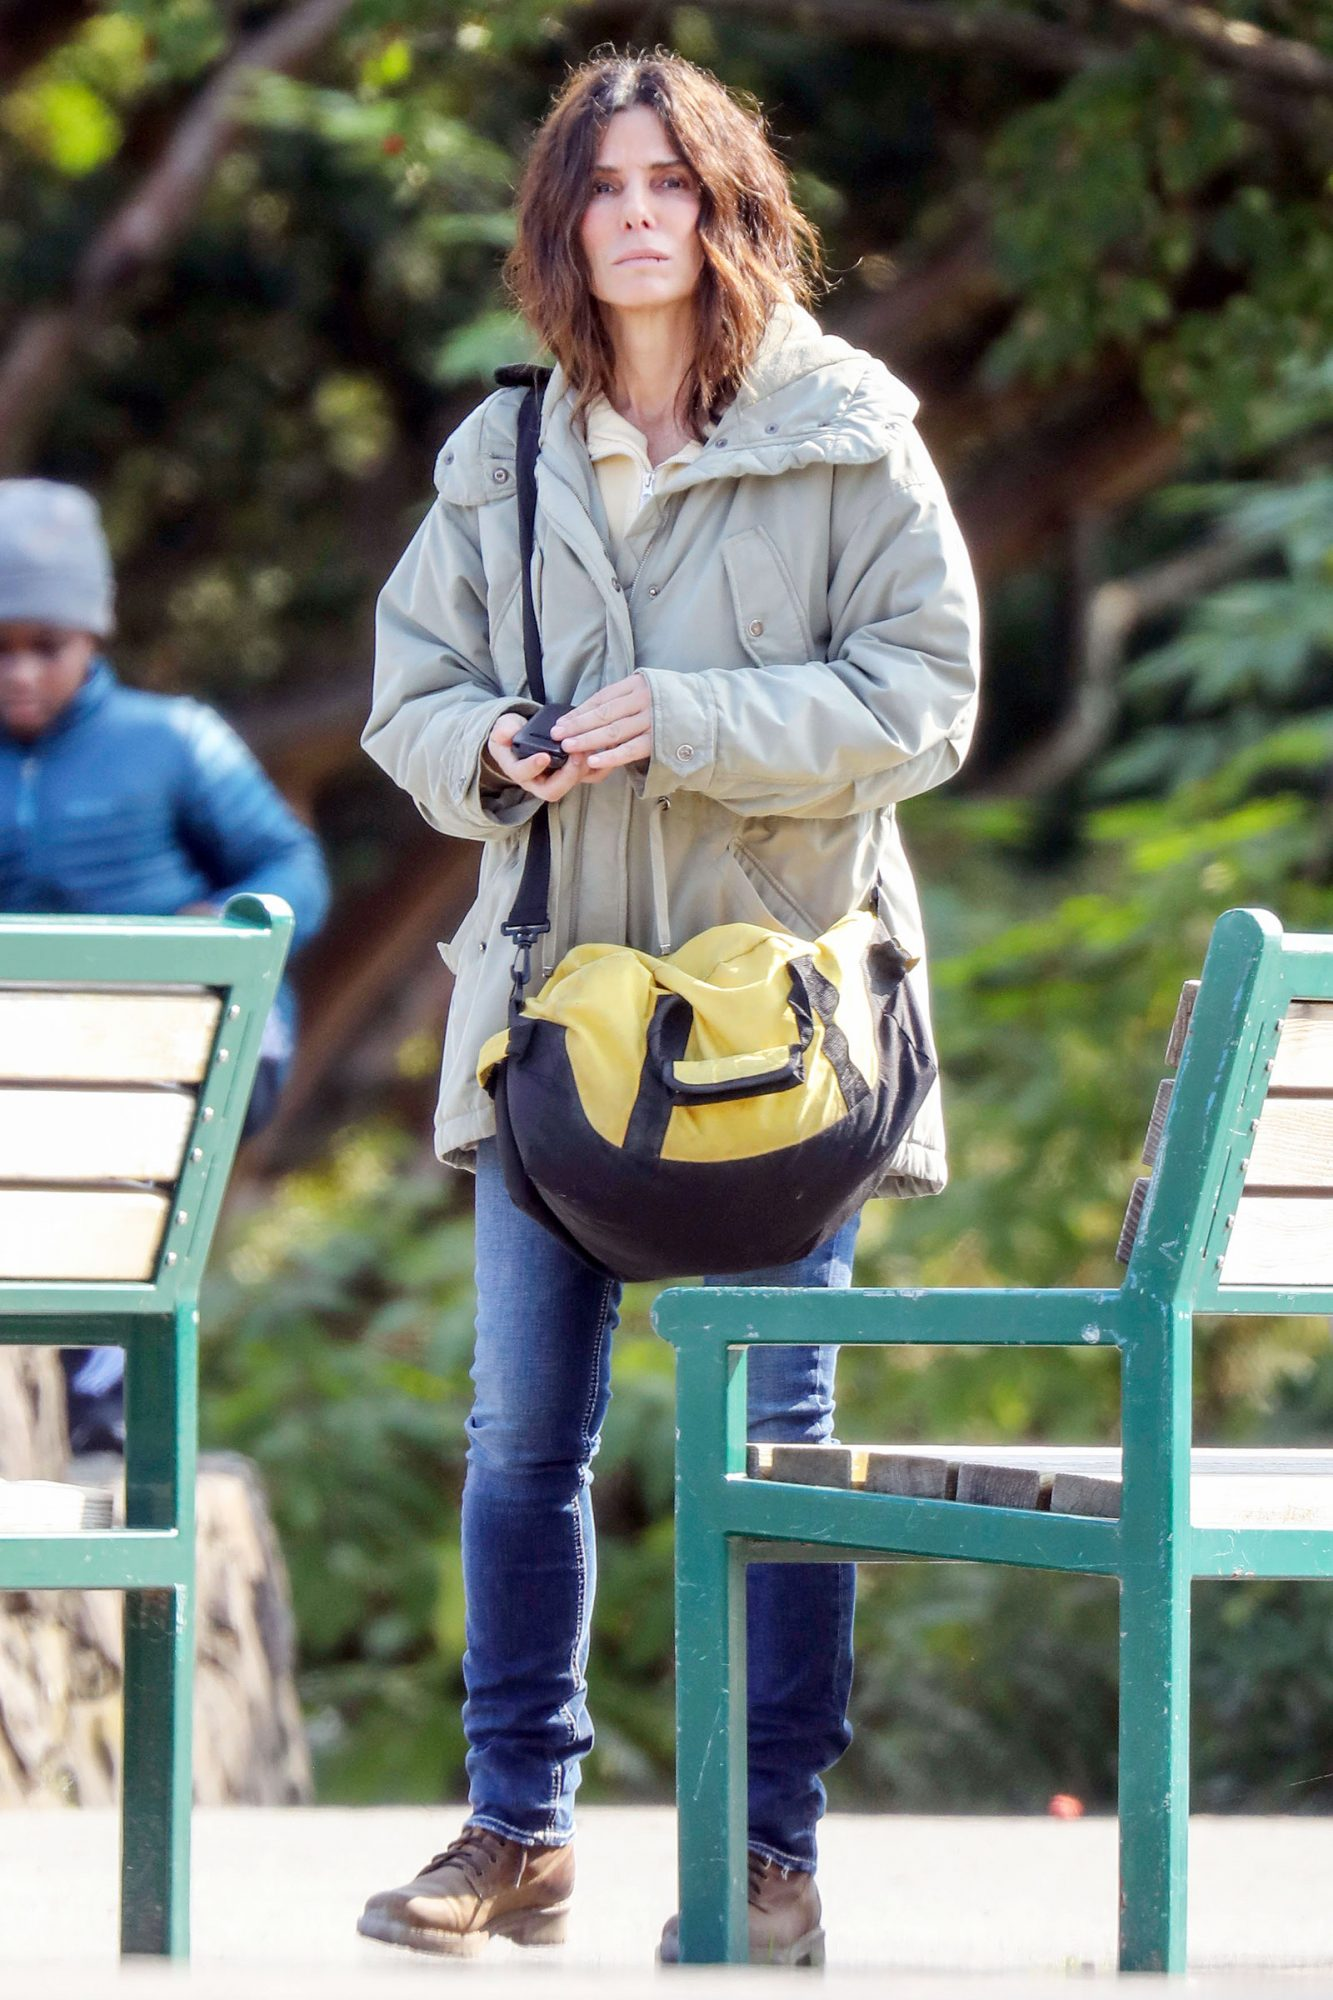 Sandra Bullock is Spotted Back to Work on the Set of a Film Project in Vancouver, Canada.